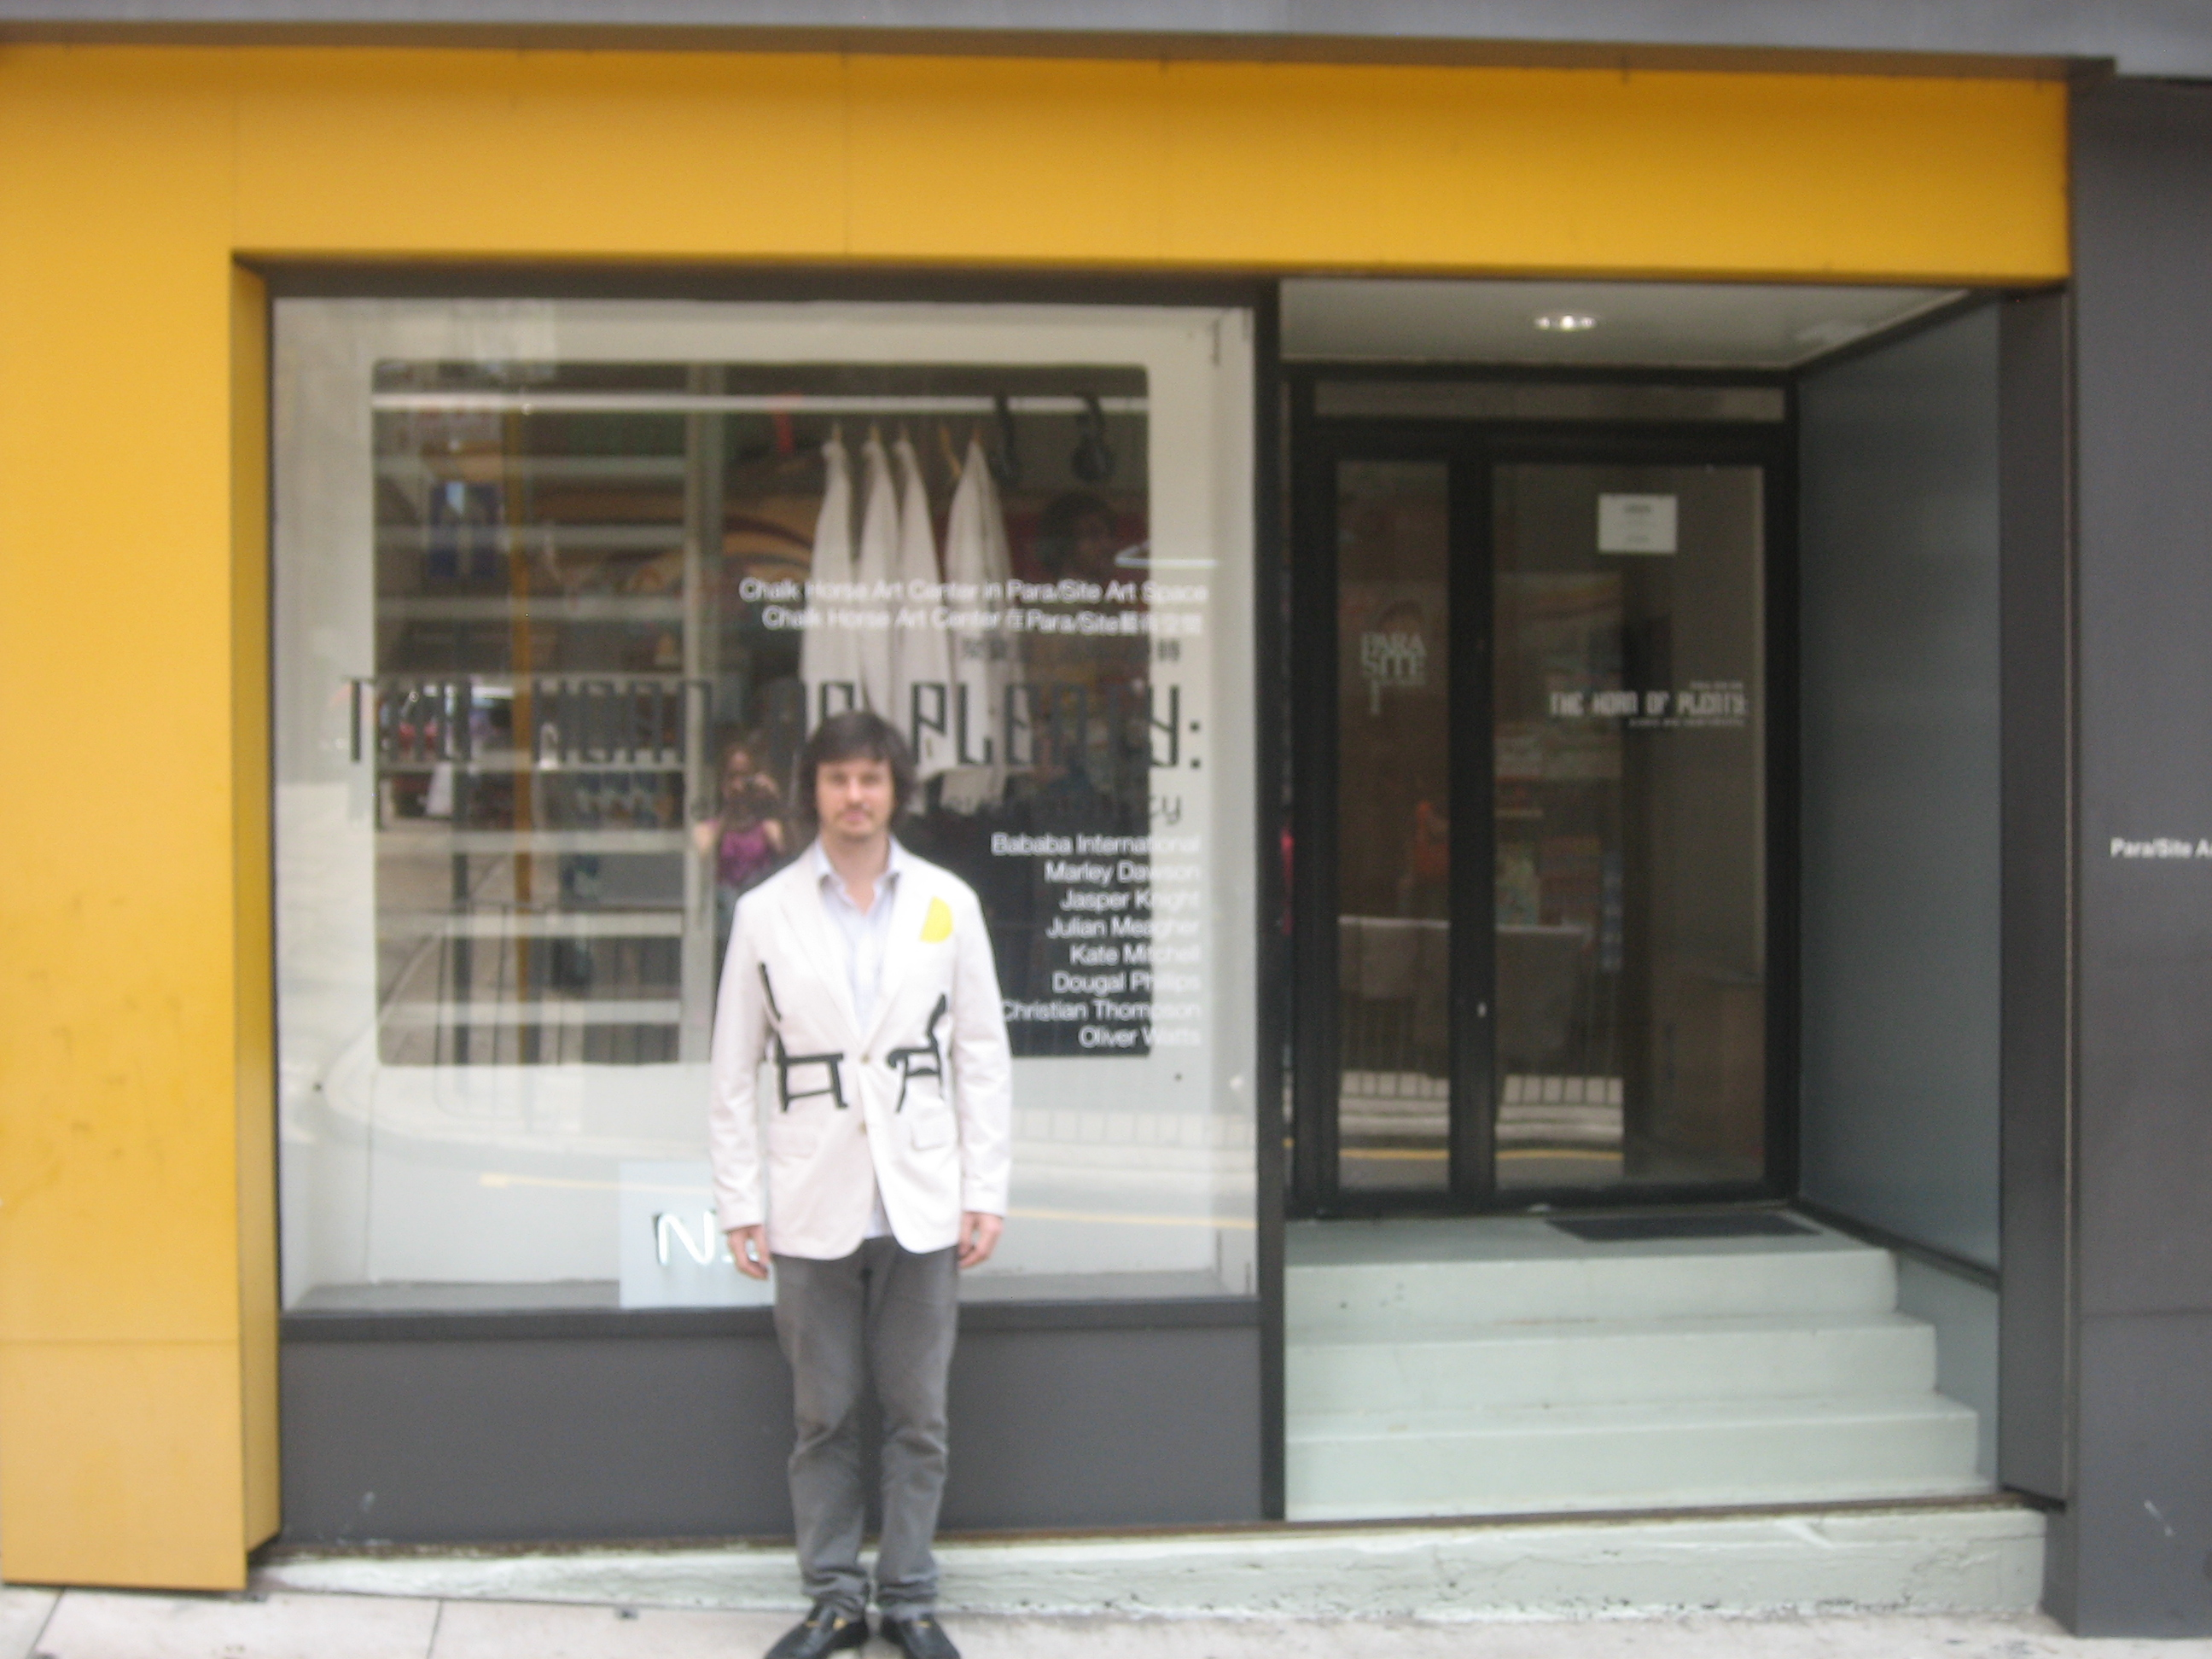 Oliver Watts outside Chalk Horse Art Center's show at Para/Site